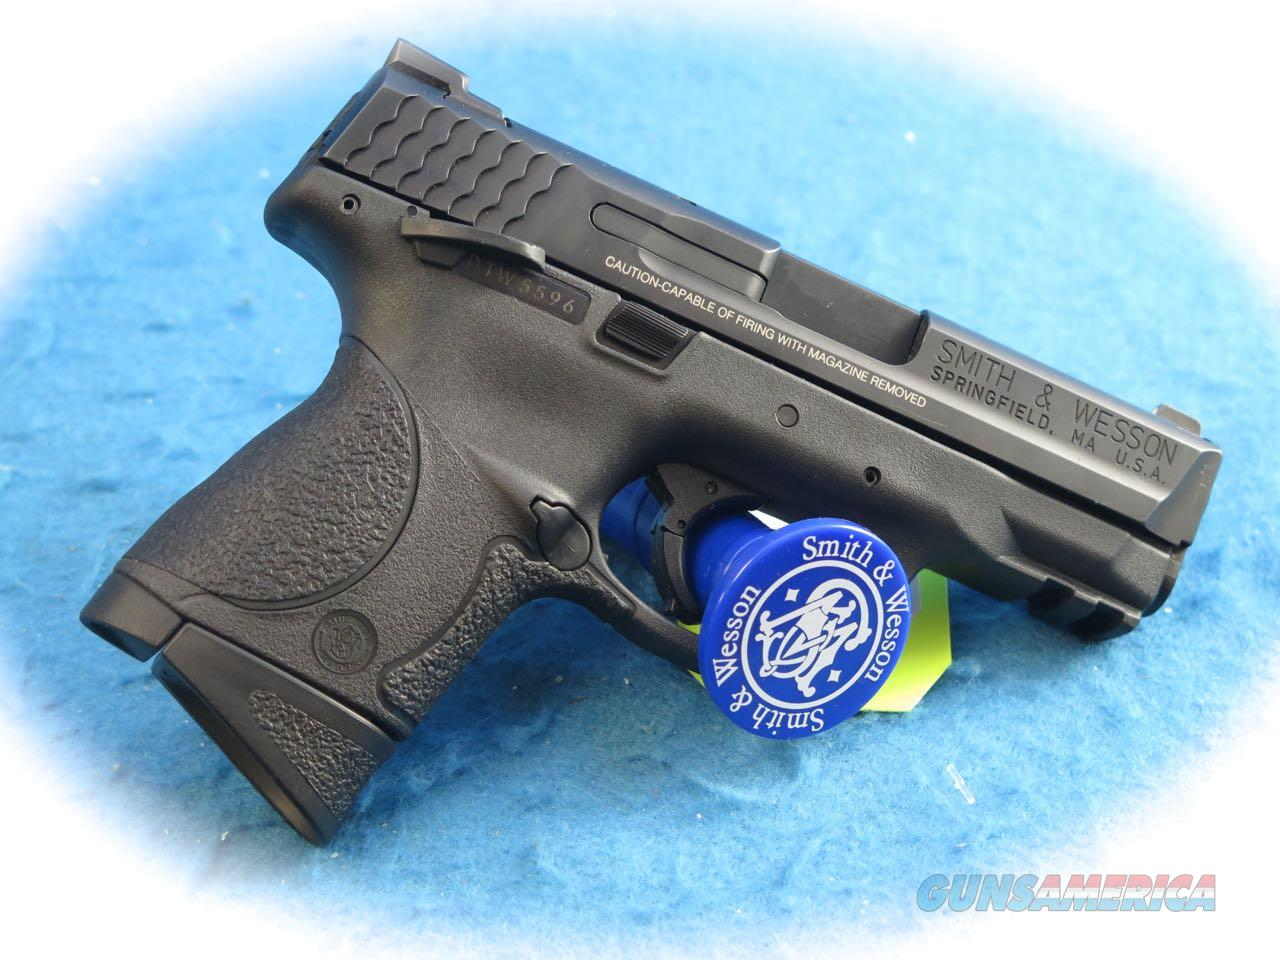 Smith & Wesson Model M&P9C 9mm Pistol **Used**  Guns > Pistols > Smith & Wesson Pistols - Autos > Polymer Frame